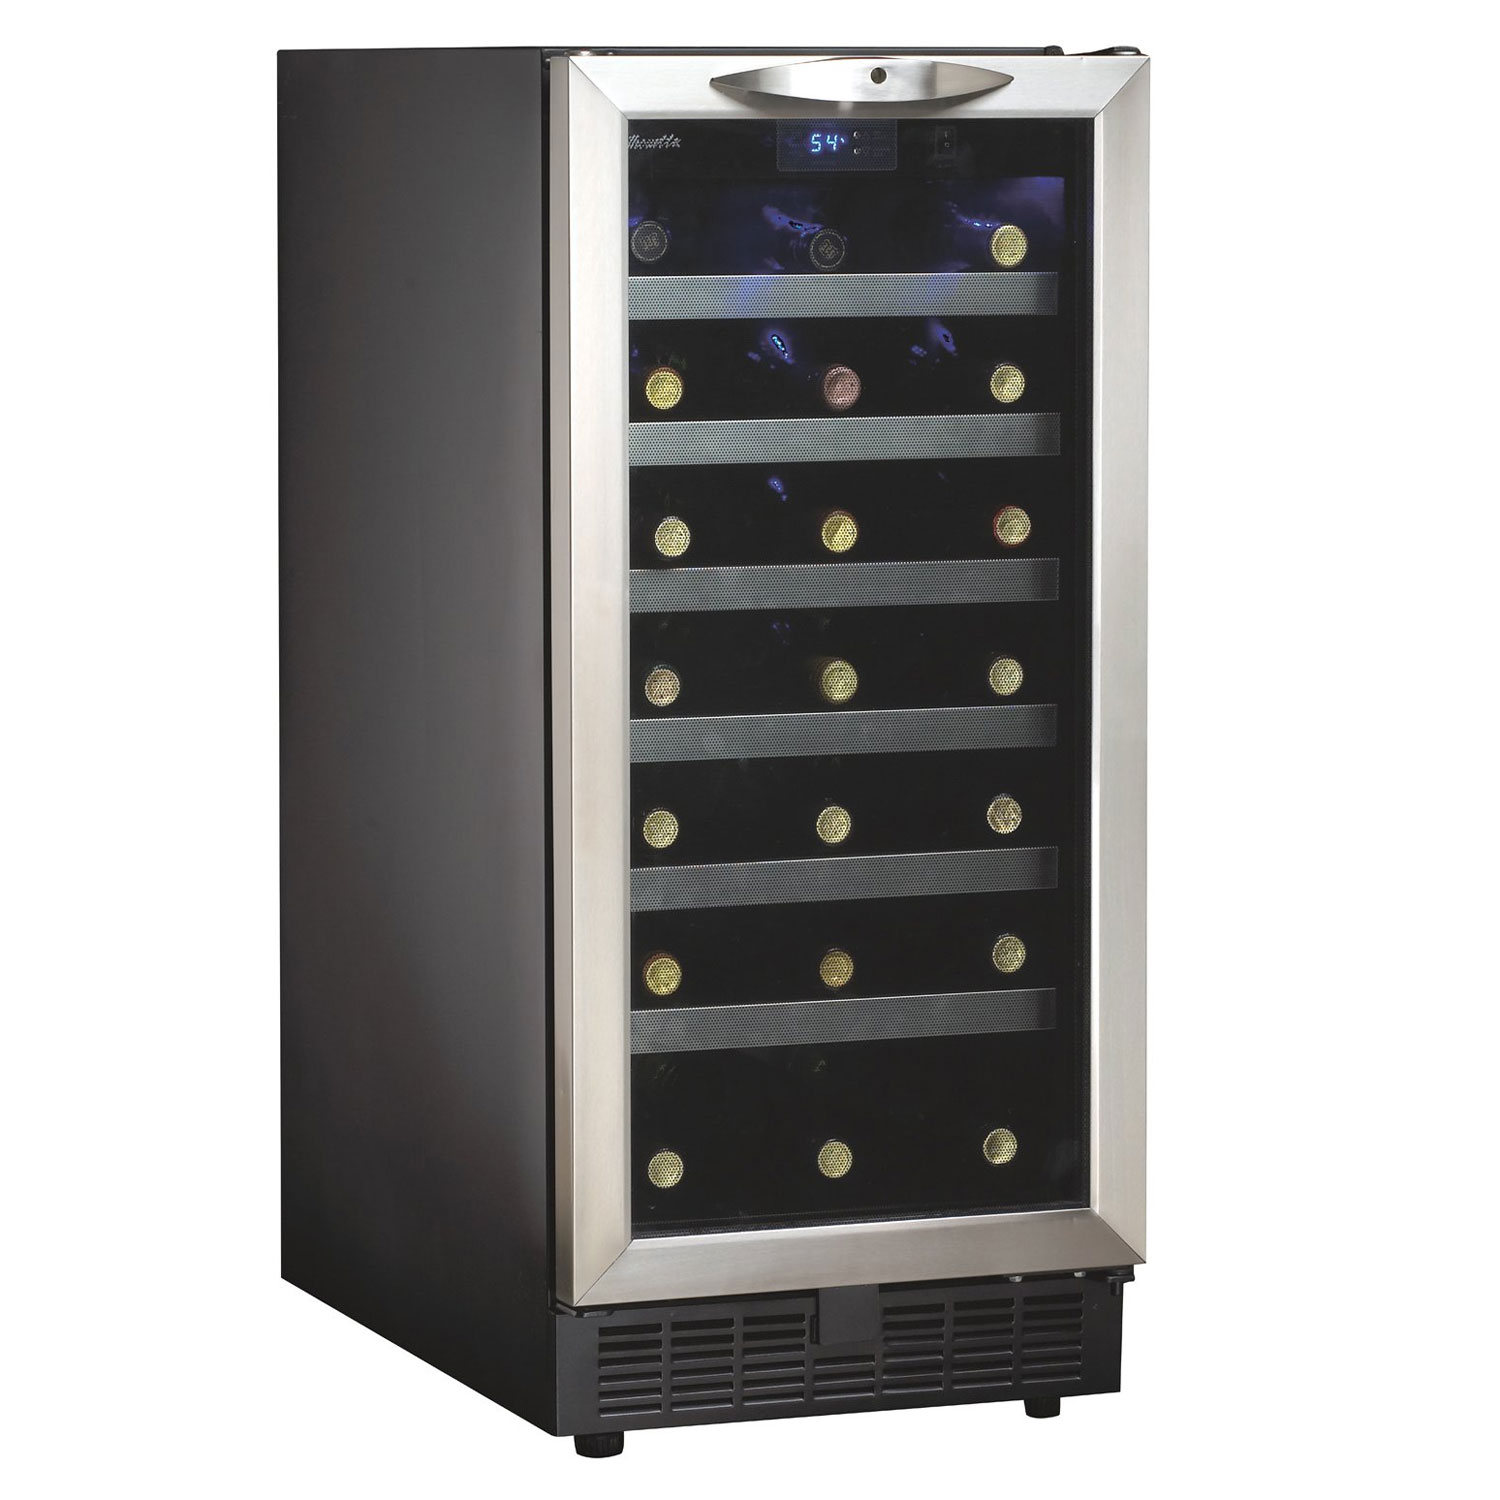 refrigerated under ikea cellar dual reviewed above with nfinity mini bottle unit zone best small furniture refrigerator the we coolers sunpentown cooler top uk cooling are here what cabinet storage costco tresanti sideboard bar fridge credenza counter max wine